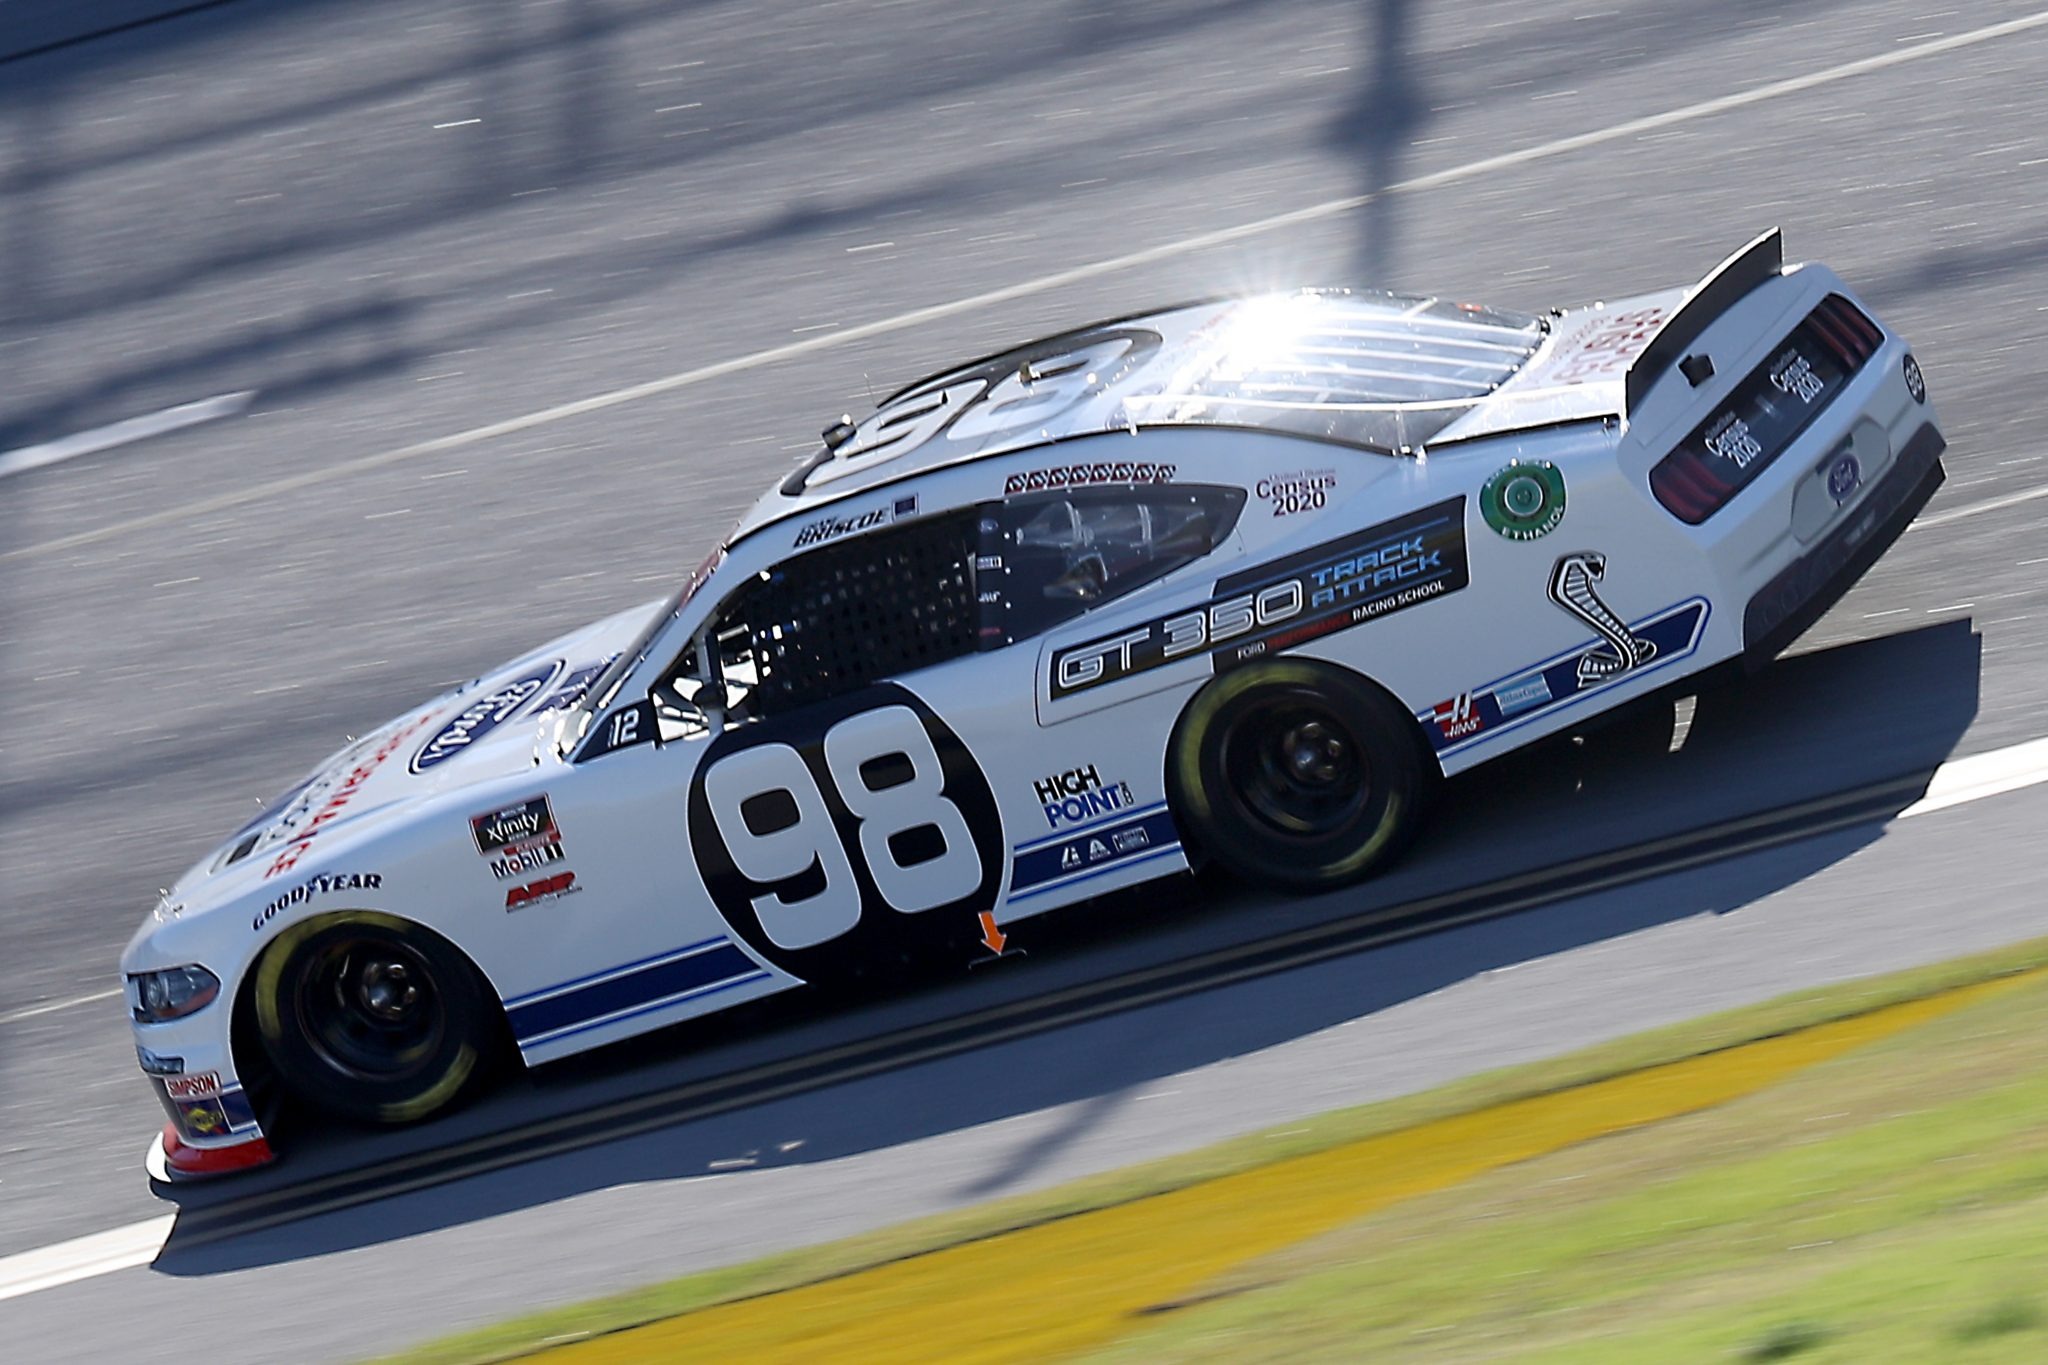 TALLADEGA, ALABAMA - OCTOBER 03: Chase Briscoe, driver of the #98 Ford Performance Racing School Ford, drives during the NASCAR Xfinity Series Ag-Pro 300 at Talladega Superspeedway on October 03, 2020 in Talladega, Alabama. (Photo by Chris Graythen/Getty Images) | Getty Images